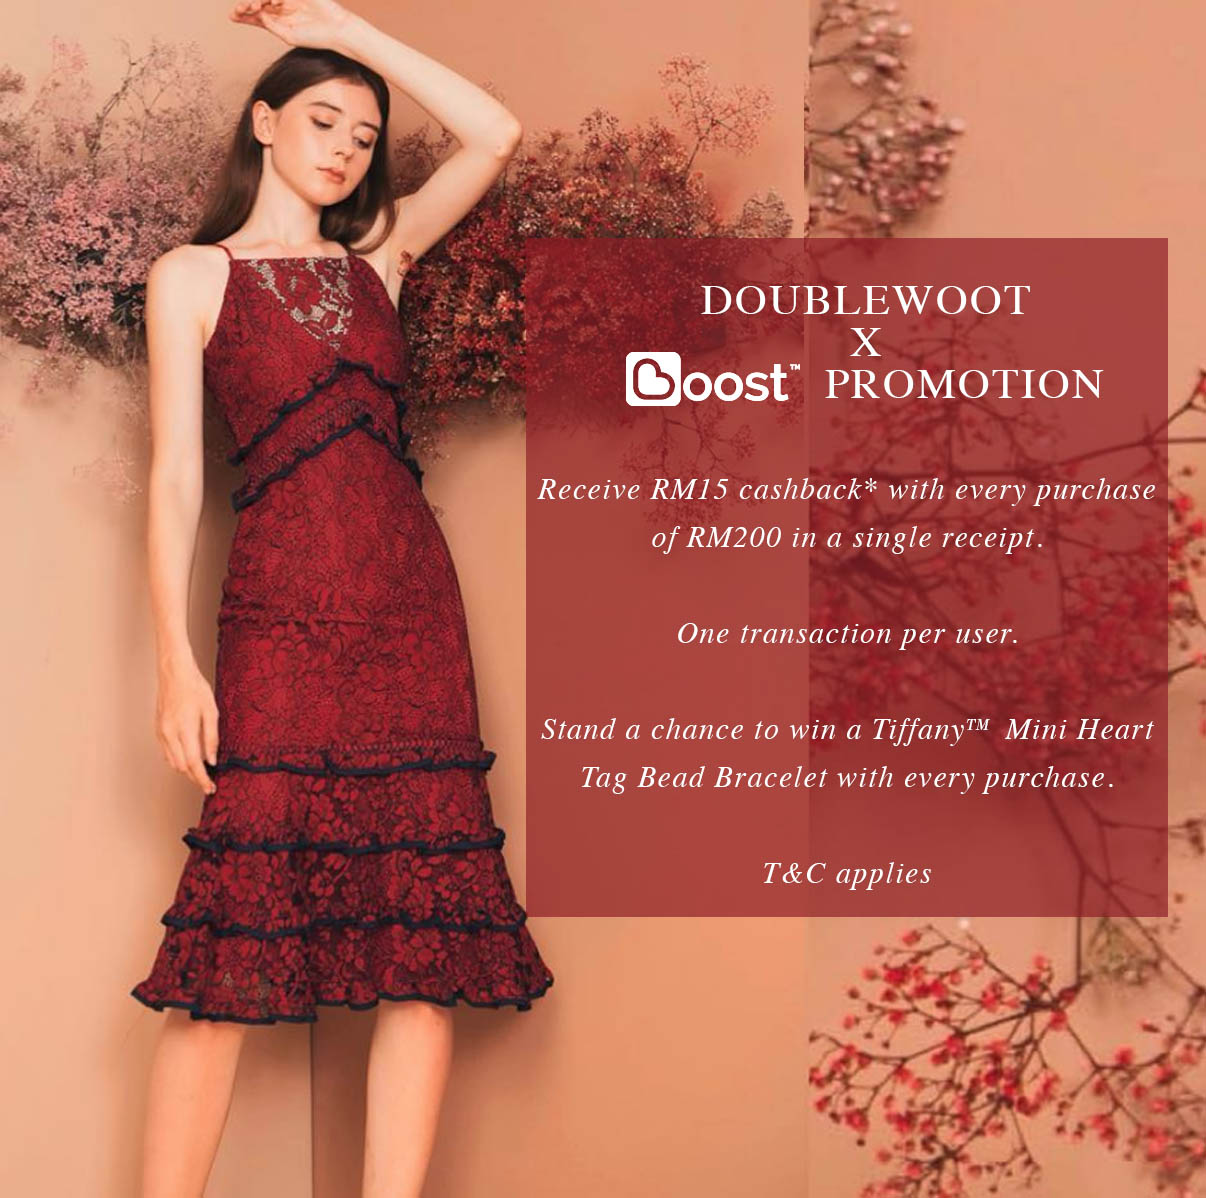 Doublewoot Online Fashion Store | Malaysia Leading Online Fashion